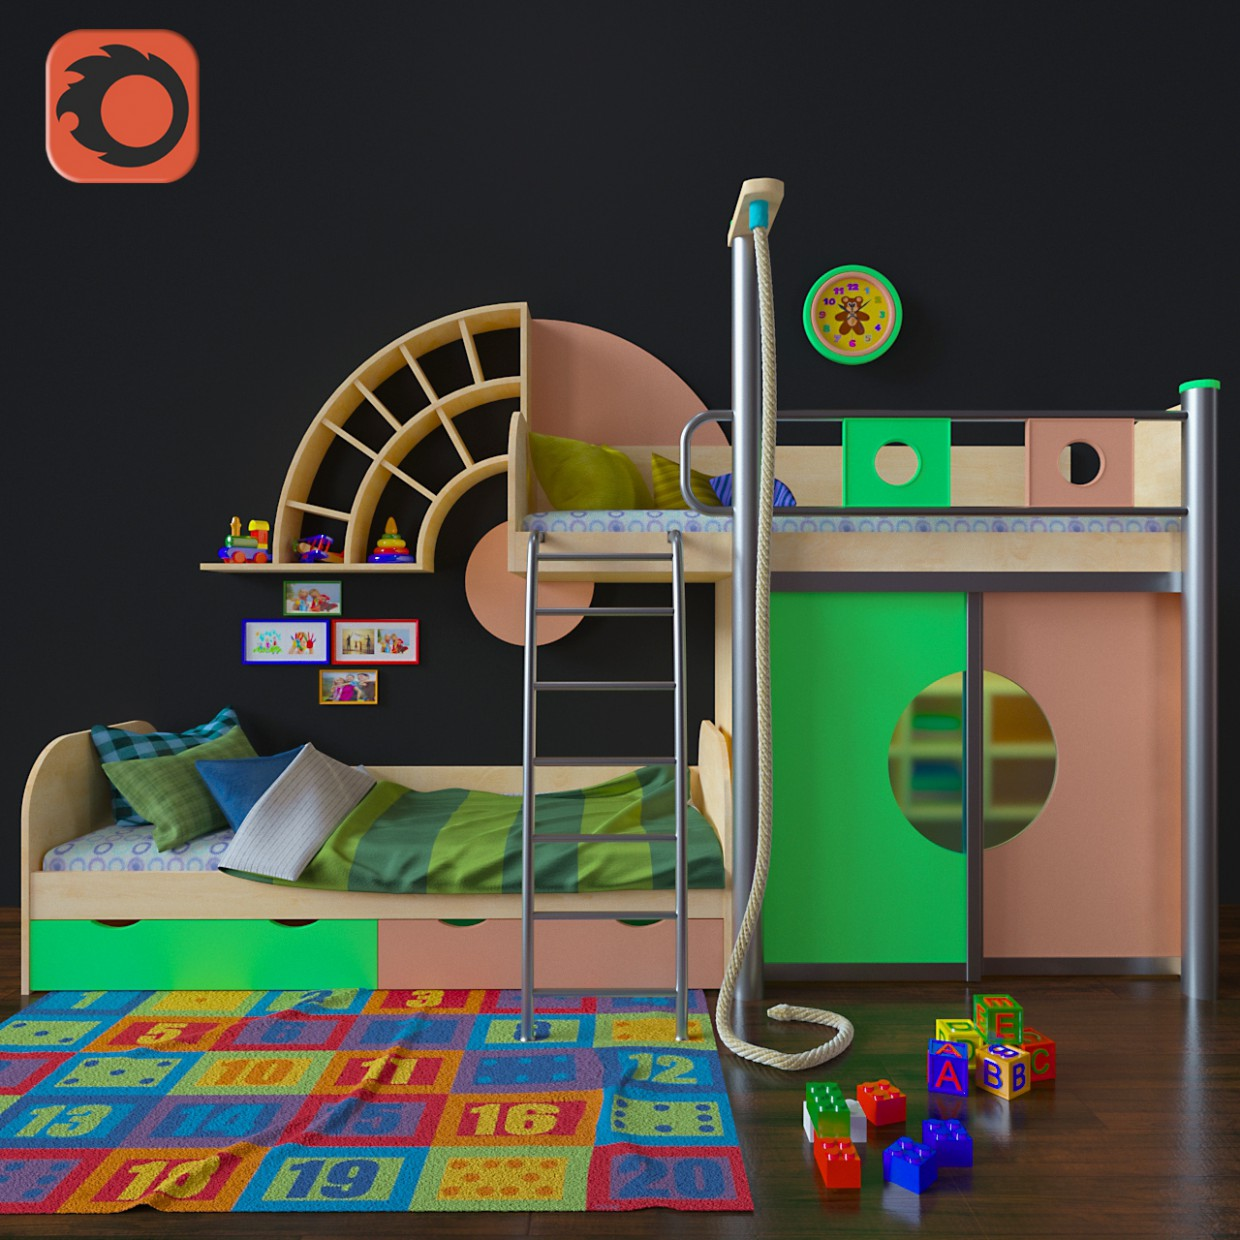 Children's furniture. modeling and visualization in 3d max corona render image